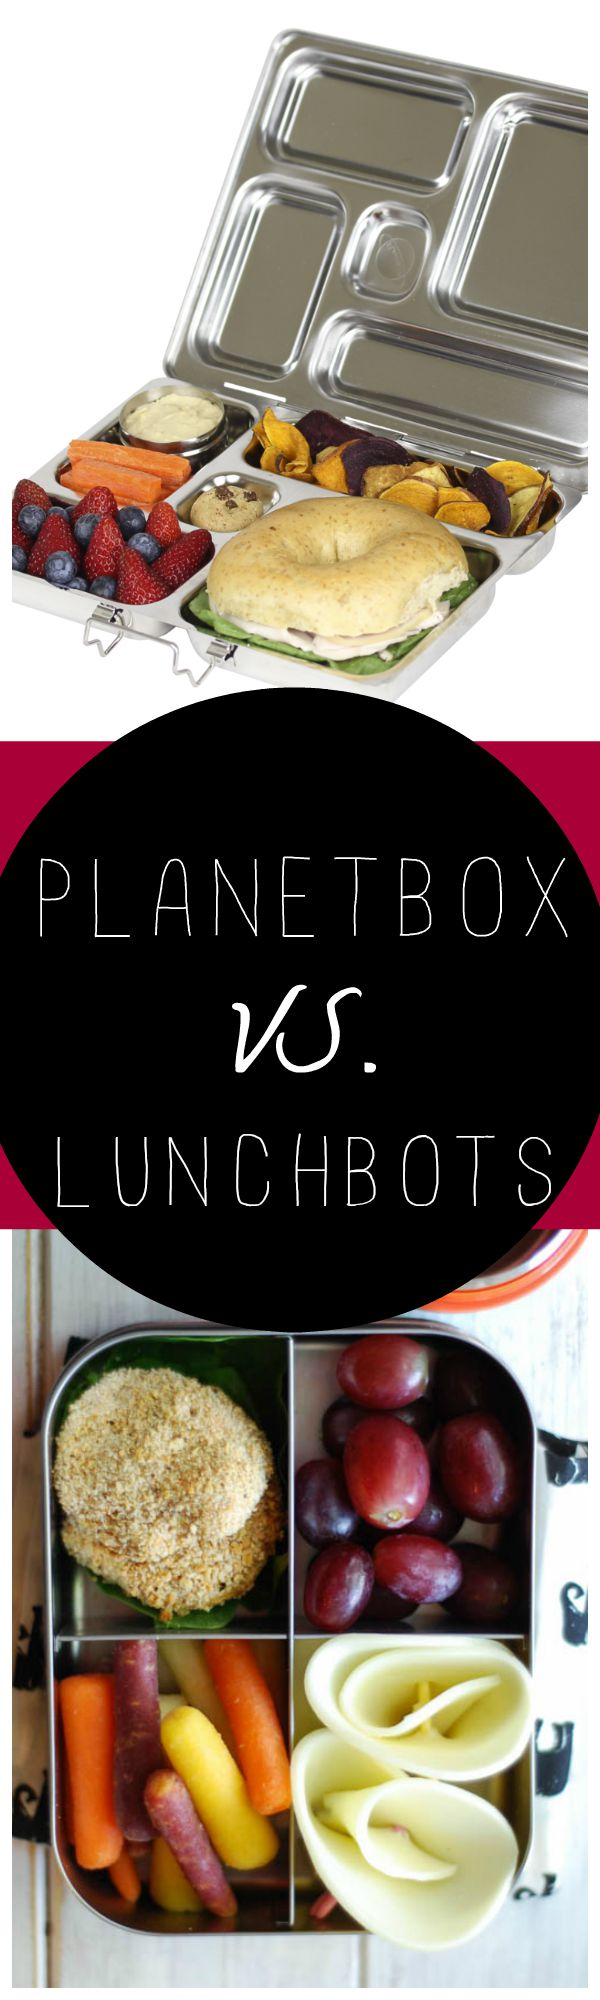 Planetbox Vs Lunchbots Lunchbox Review